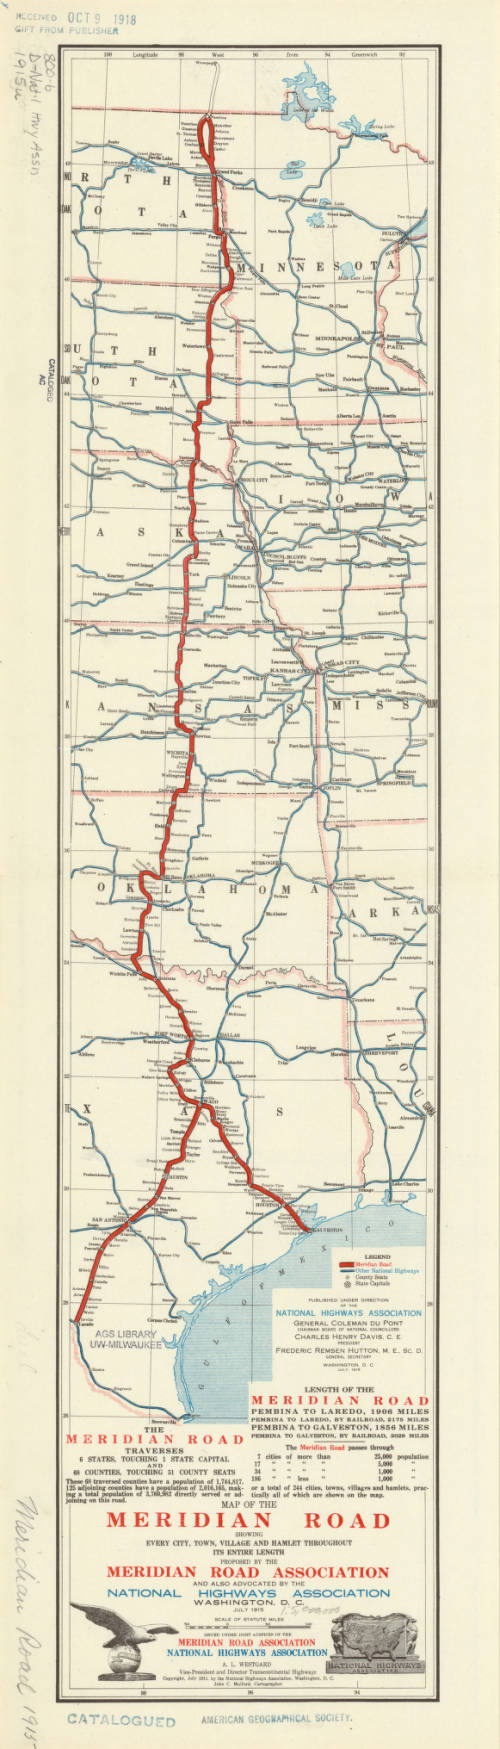 Central United States 1915 - American Geographical Society ...